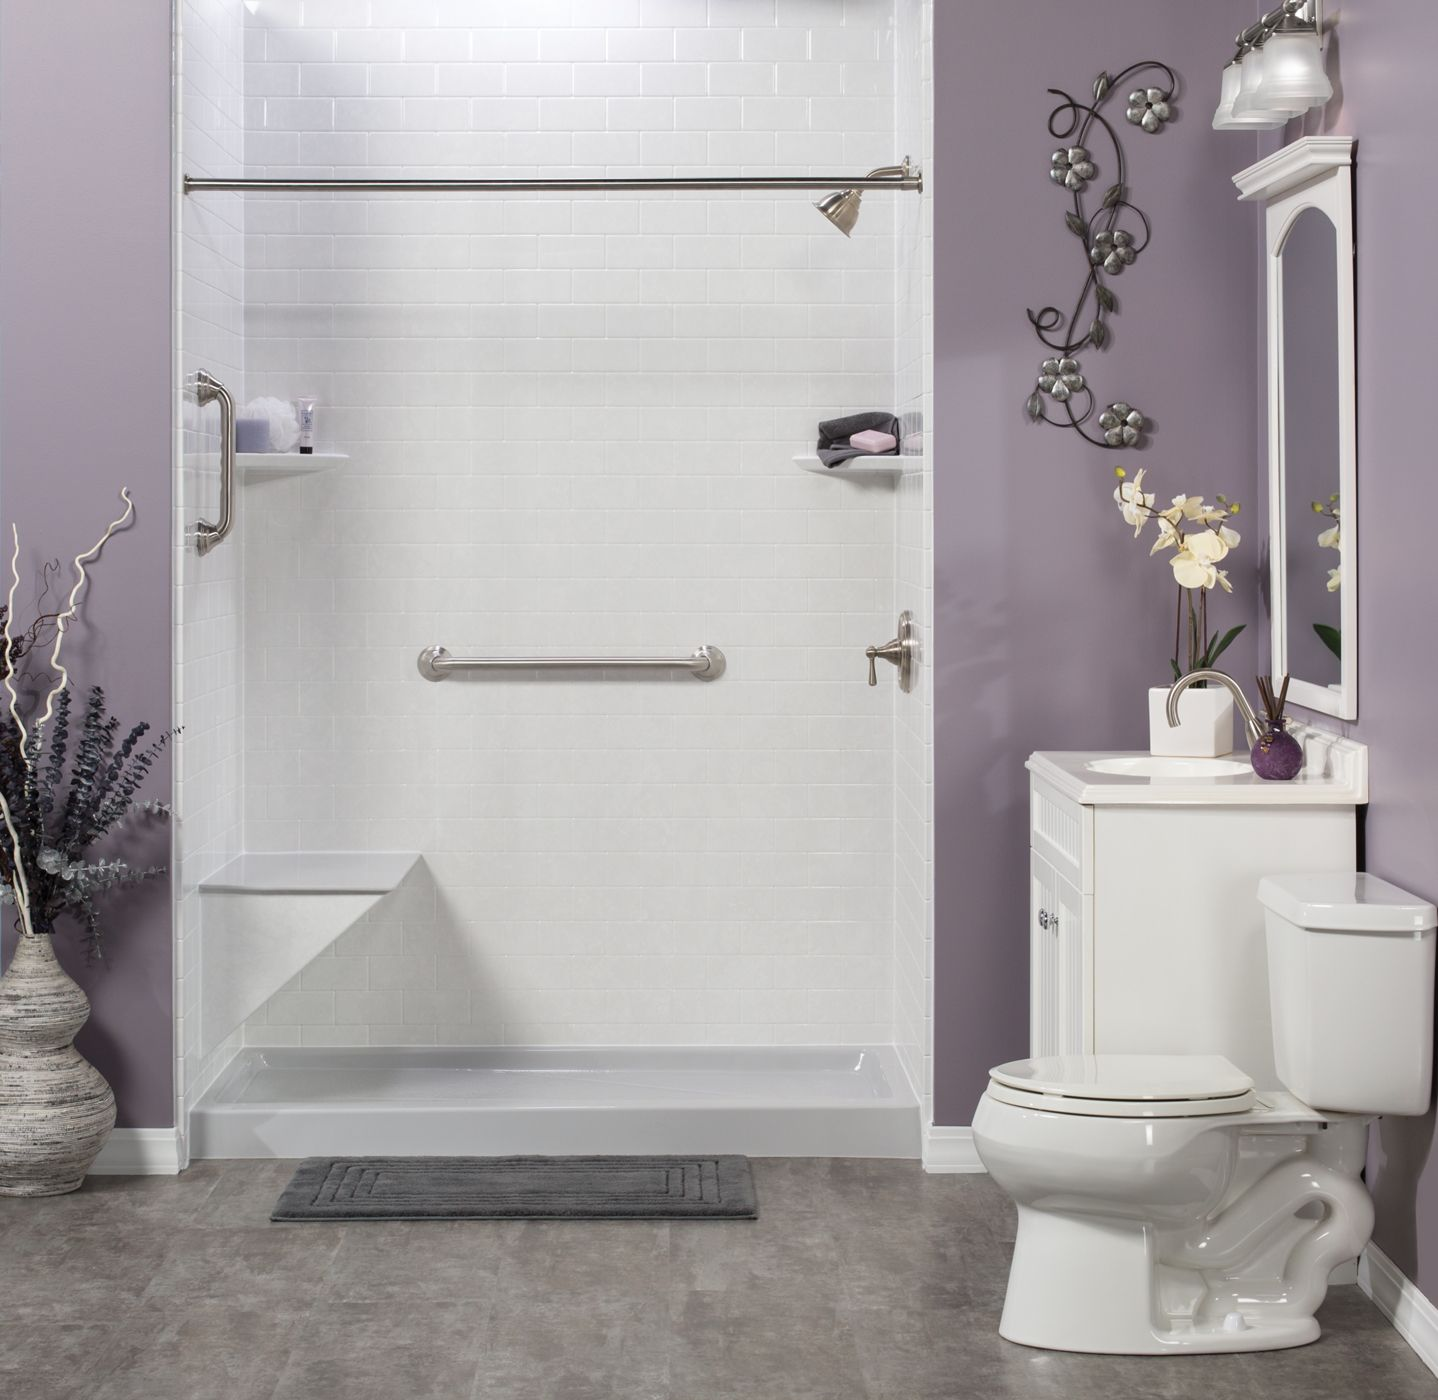 Instant Bathroom Remodeling From Old To New In Just One Day Cick